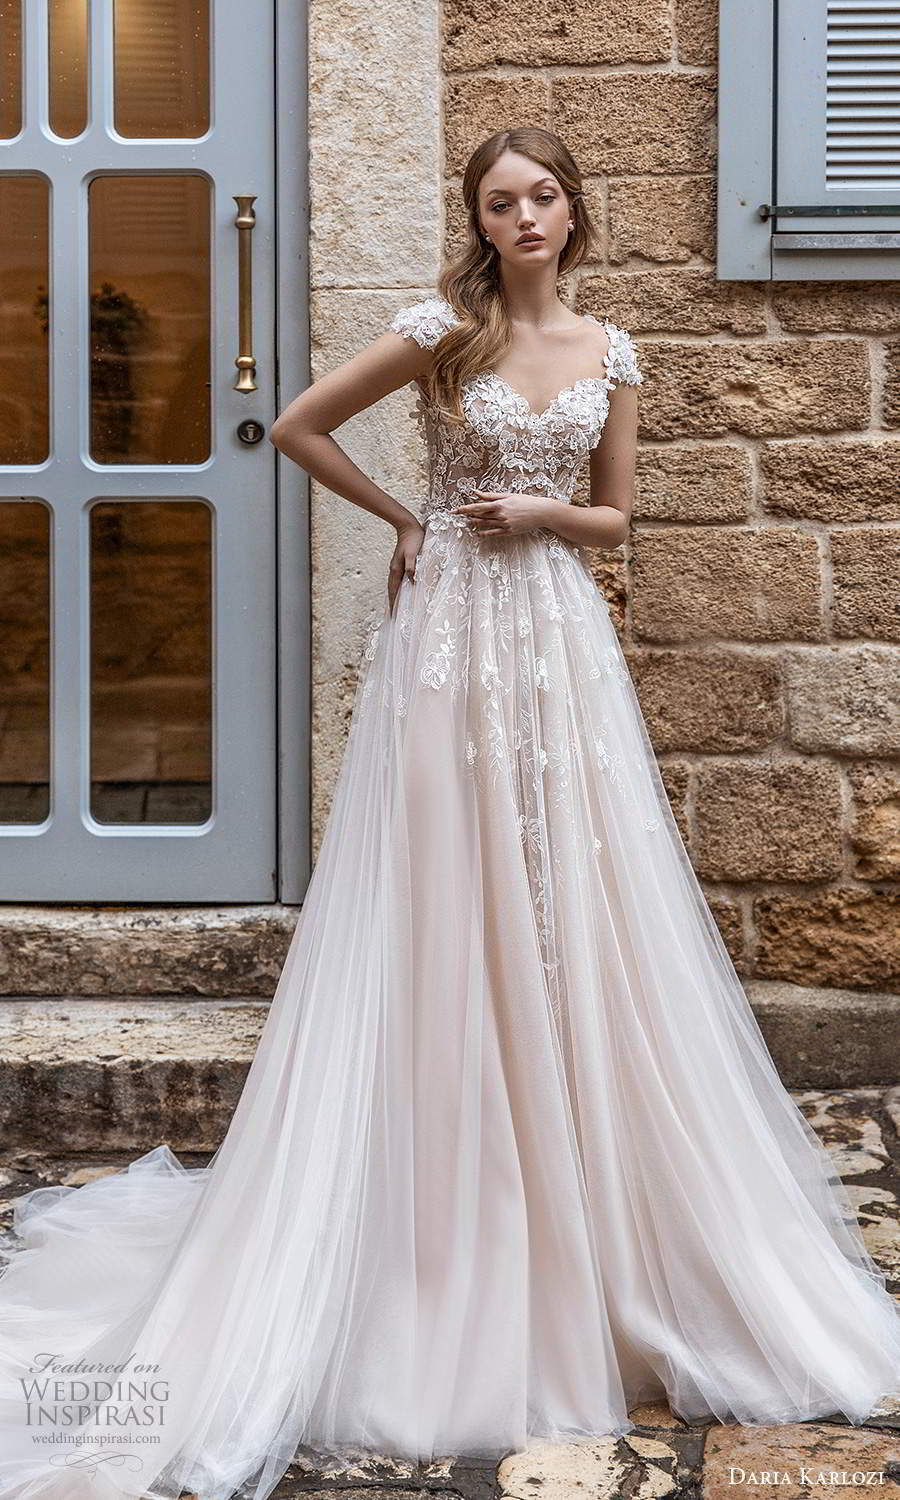 daria karlozi 2021 bridal cap sleeves sweetheart embellished bodice a line ball gown wedding dress chapel train blush color (1) mv